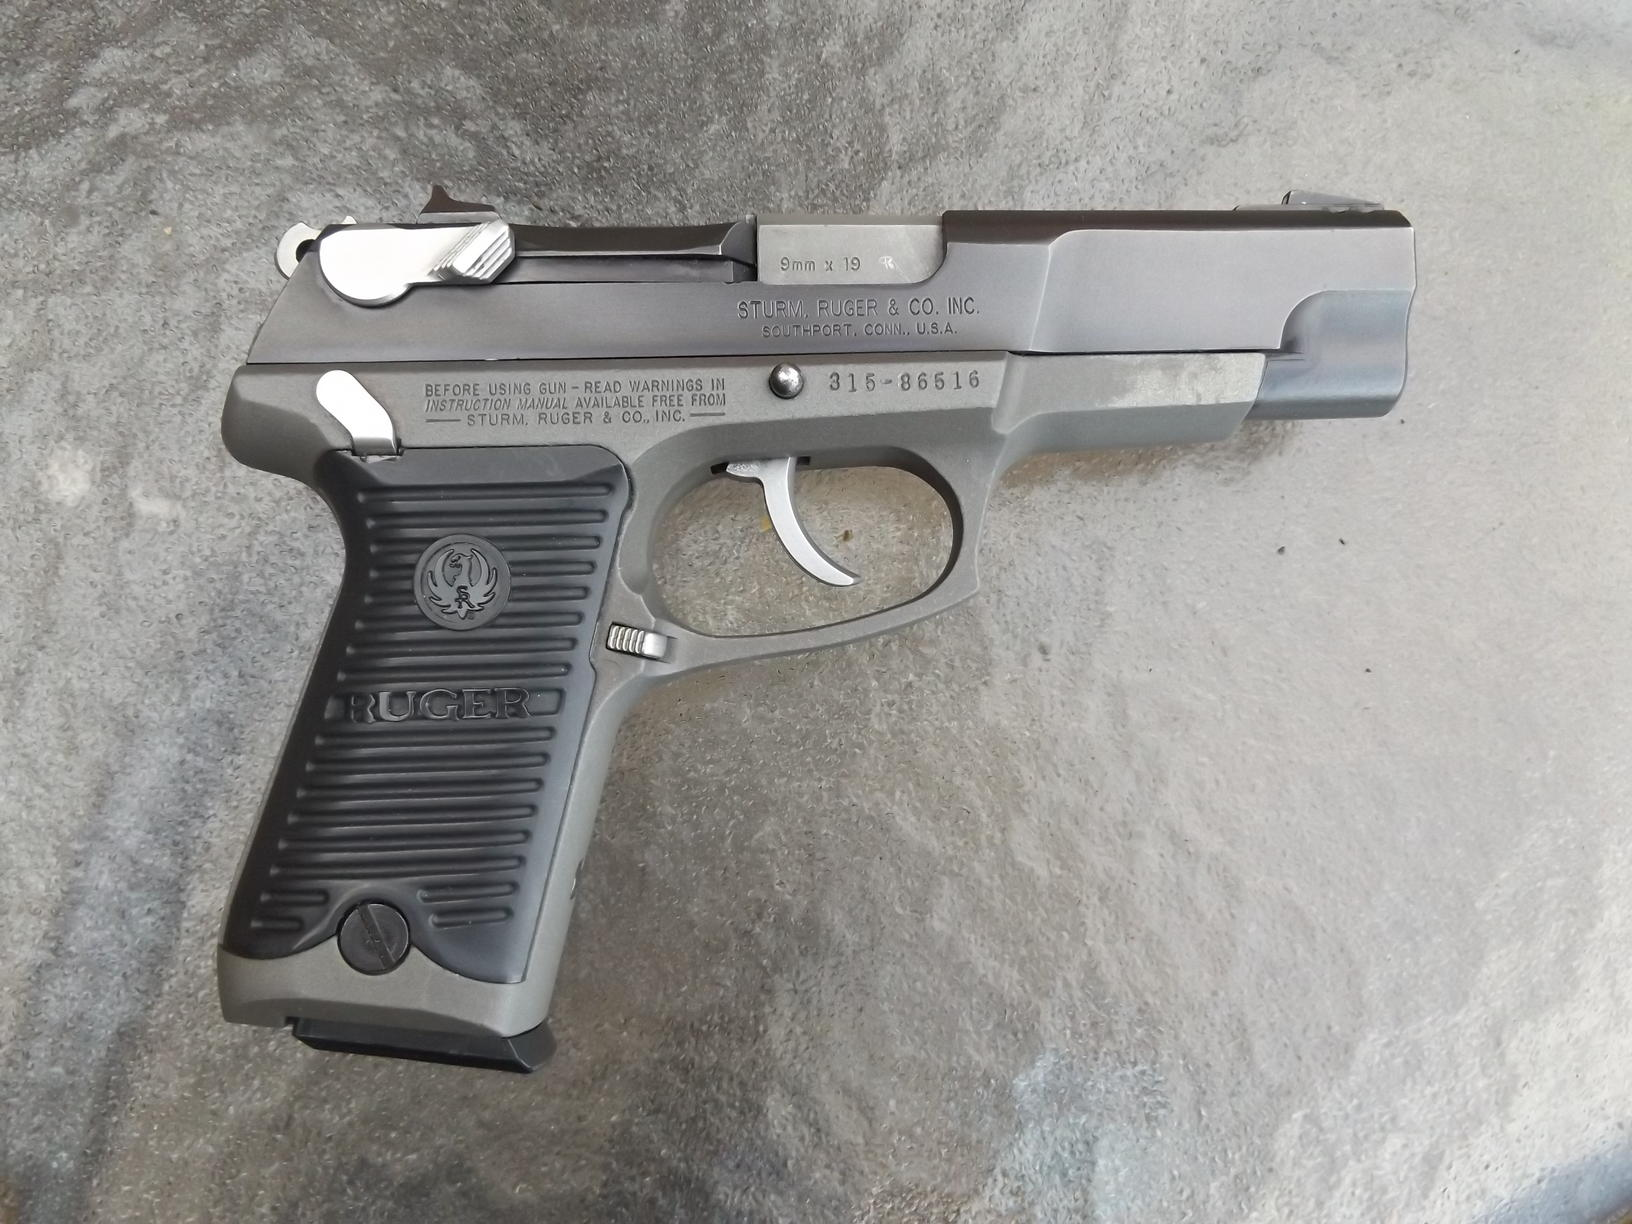 Product Review Ruger P 89 9mm